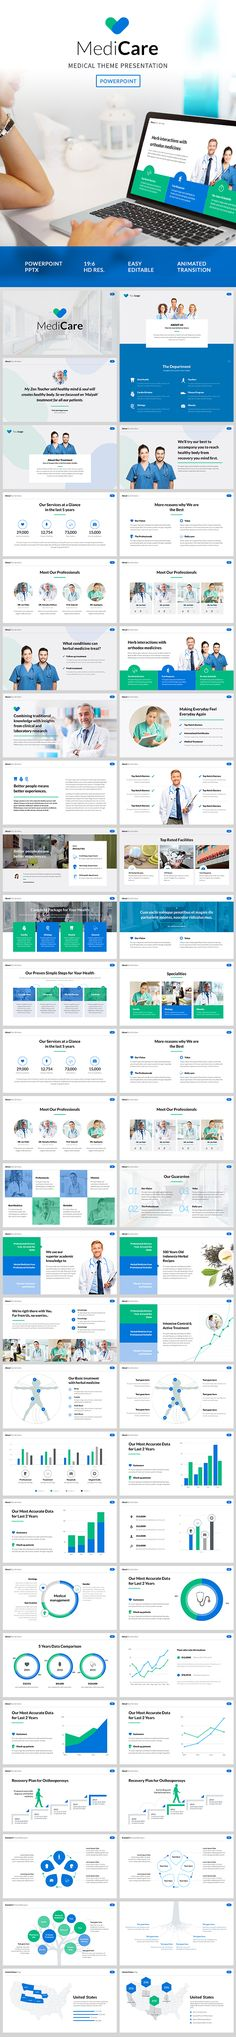 Medicare - Medical Theme Powerpoint Template - #PowerPoint Templates Presentation Templates